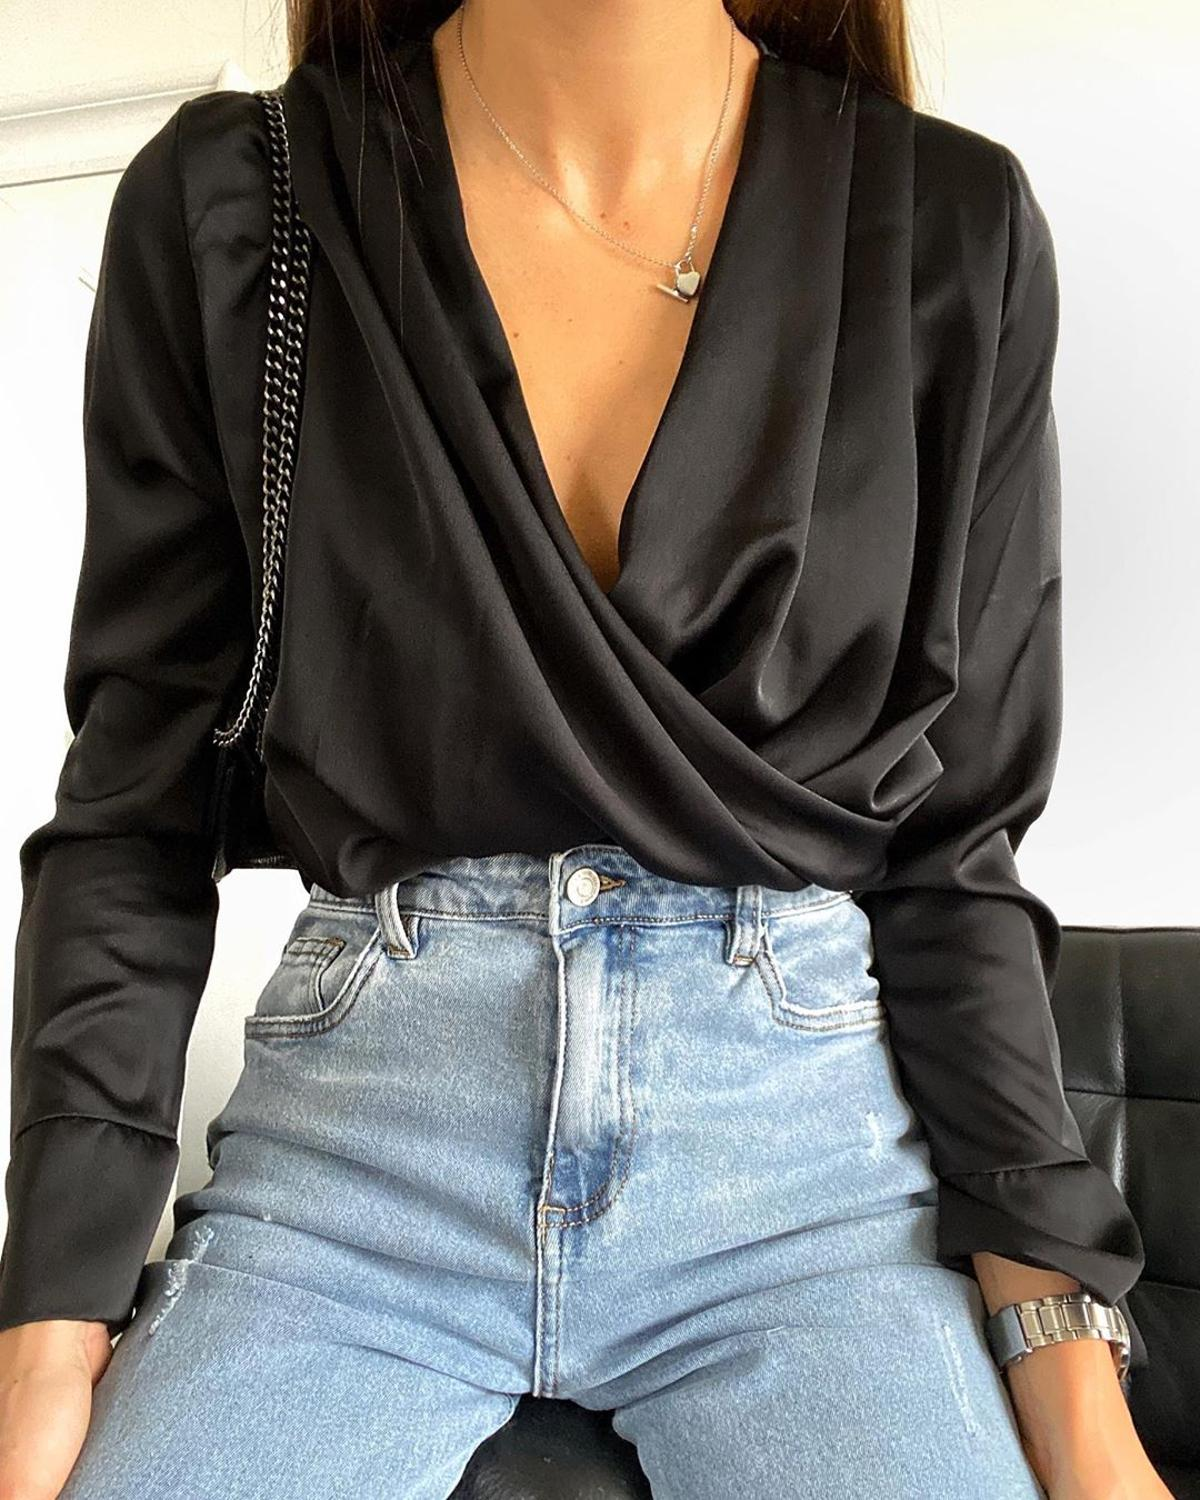 Shyloli Women Satin v Neck Sexy Tops And Blouse Solid Color Fashion Summer Autumn Long Sleeve Shirts Party Club Fashion 2020